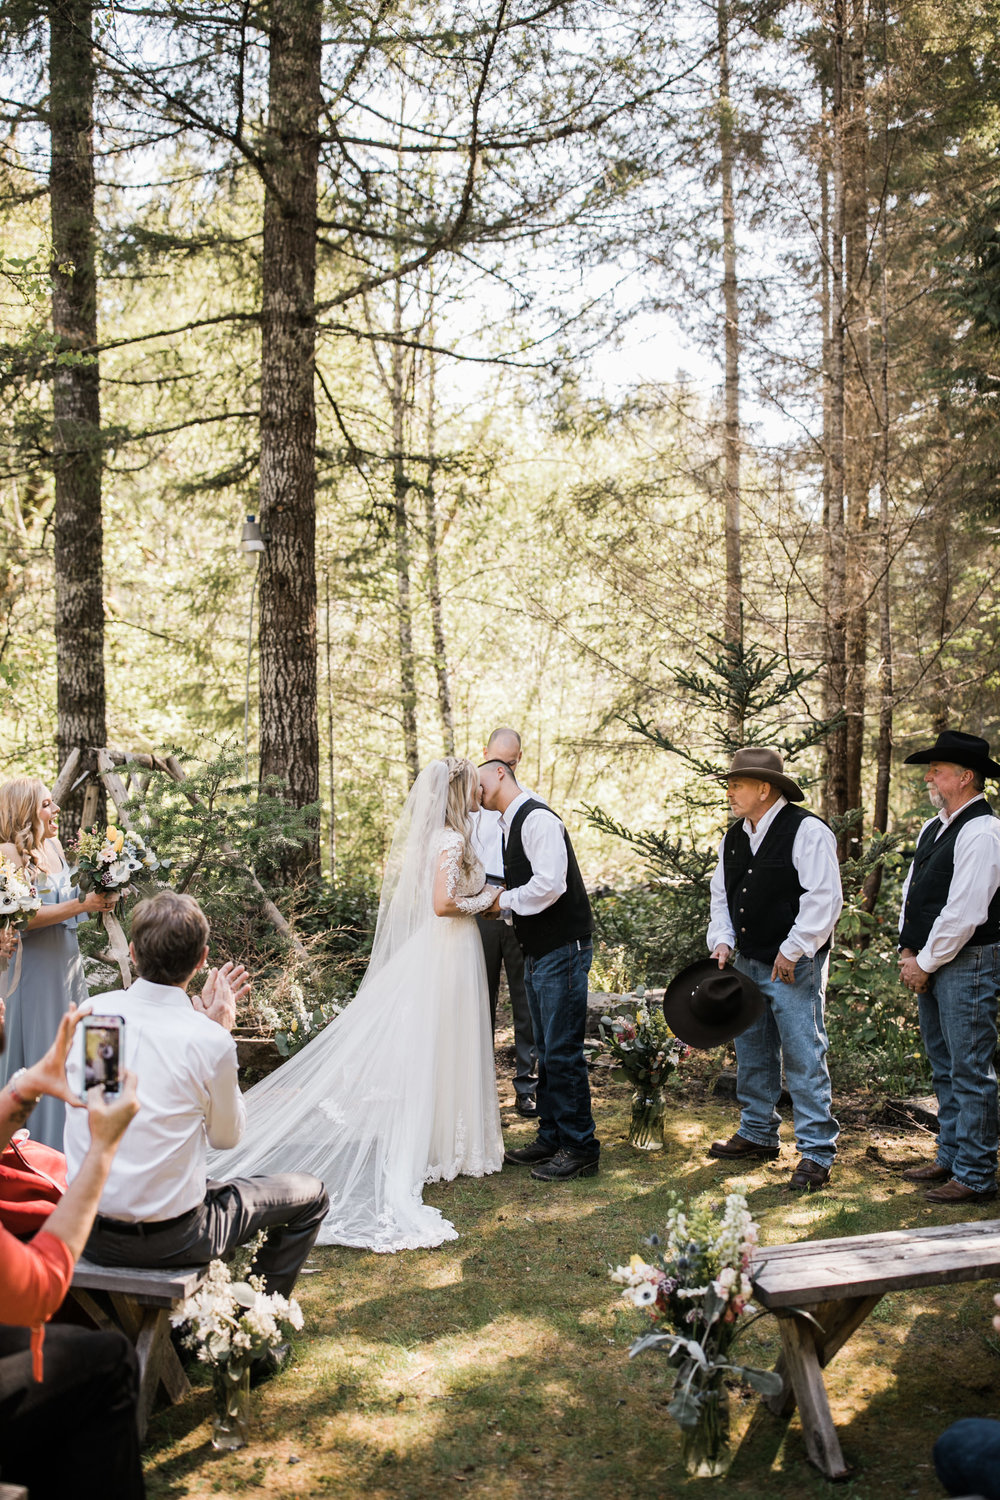 intimate ceremony at an airbnb cabin in washington | wedding ceremony in a forest | first dance in the mountains | national park elopement photographer